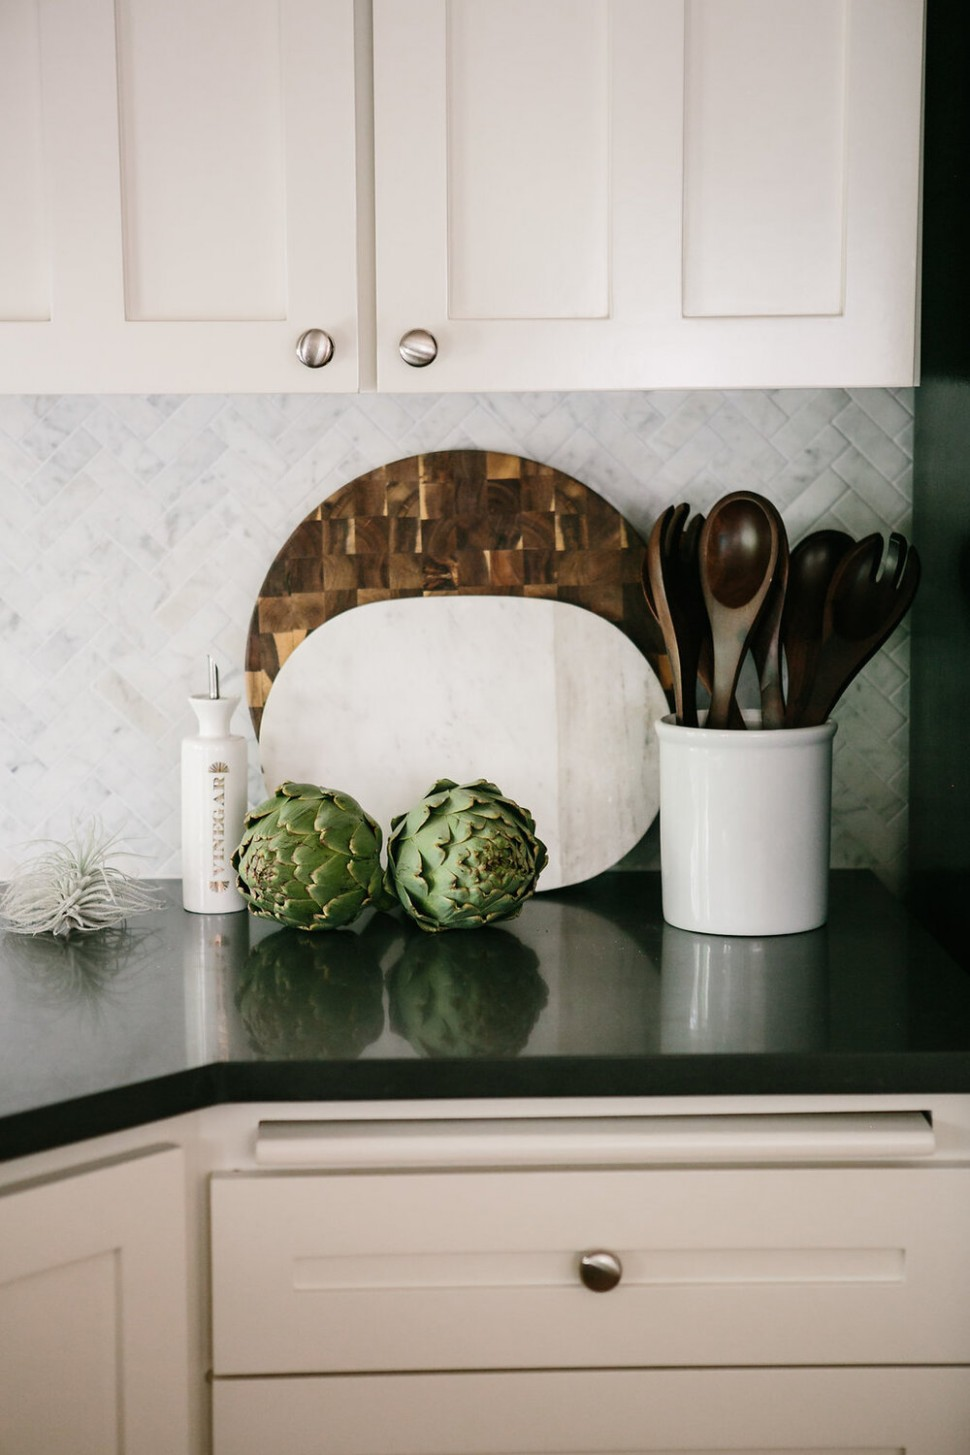 How To Place Cabinet Knobs According To An Interior Designer - Installing Knobs And Pulls On Kitchen Cabinets